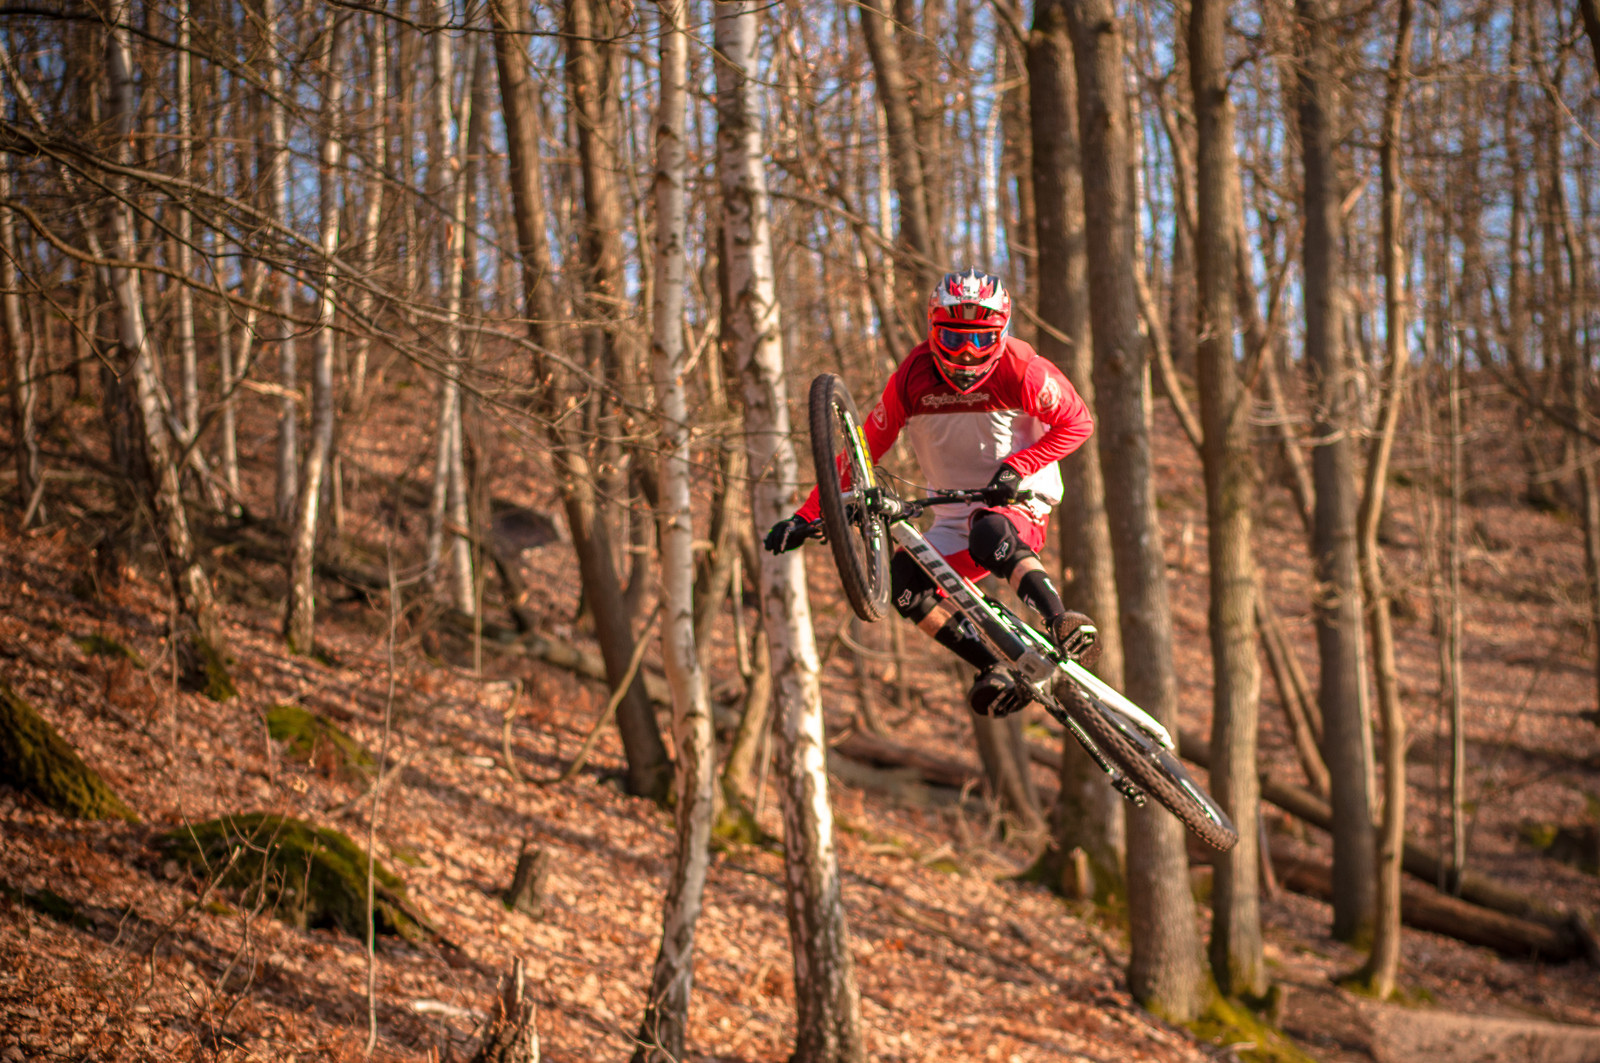 Whip it  - Romuald_Manach - Mountain Biking Pictures - Vital MTB